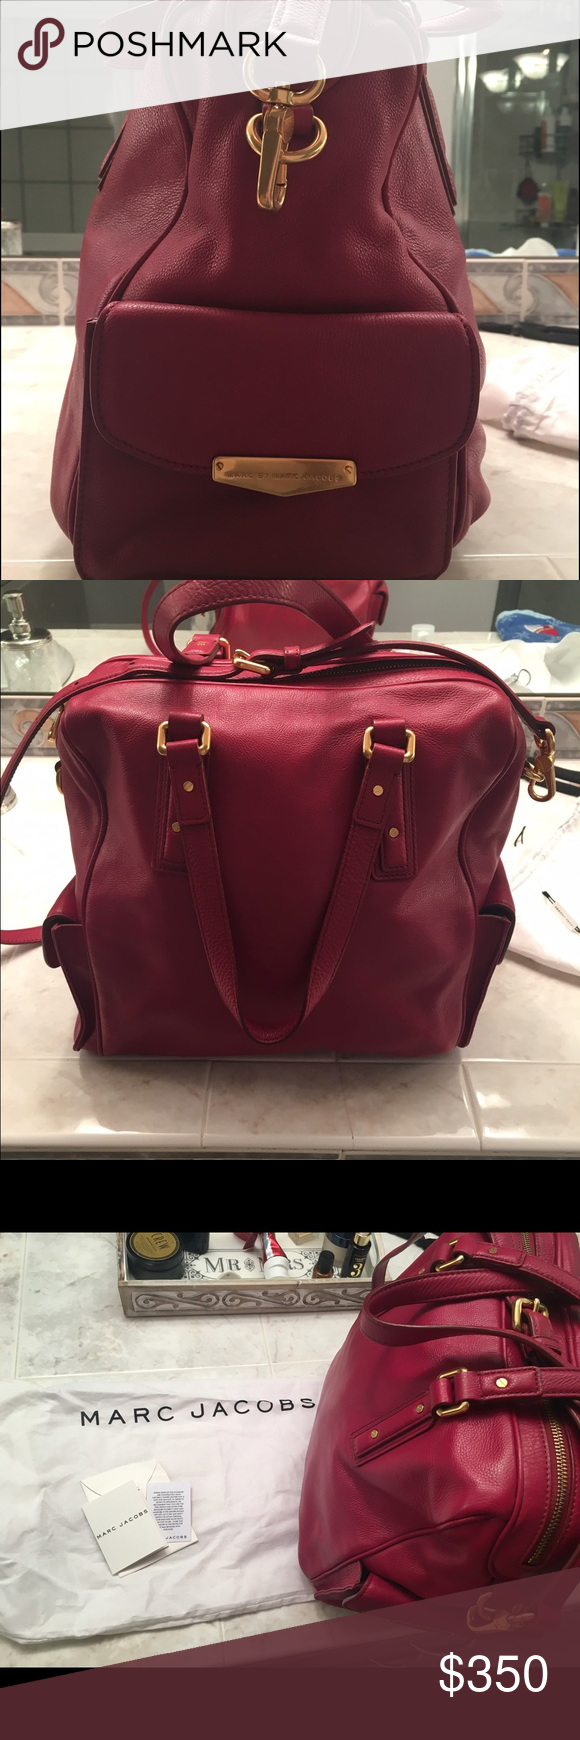 Marc Jacobs purse Beautiful red leather with gold detailing, used 1 time, practically new. Super clean. Adjustable shoulder strap or carry handles. Lots of pockets. Marc by Marc Jacobs Bags Shoulder Bags